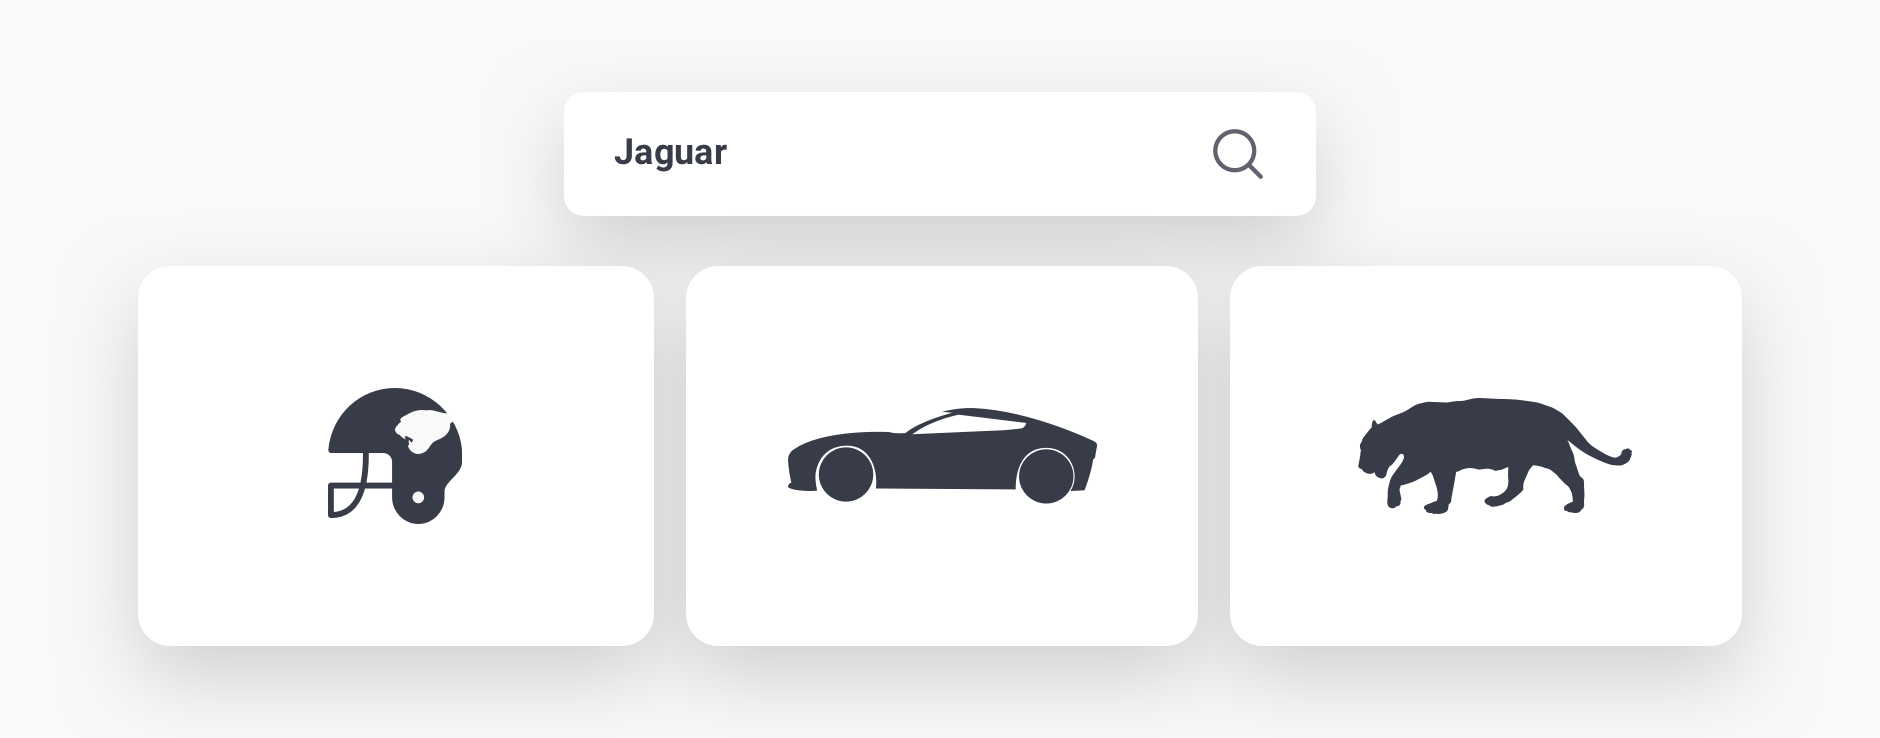 Illustration showing the word Jaguar having multiple meanings